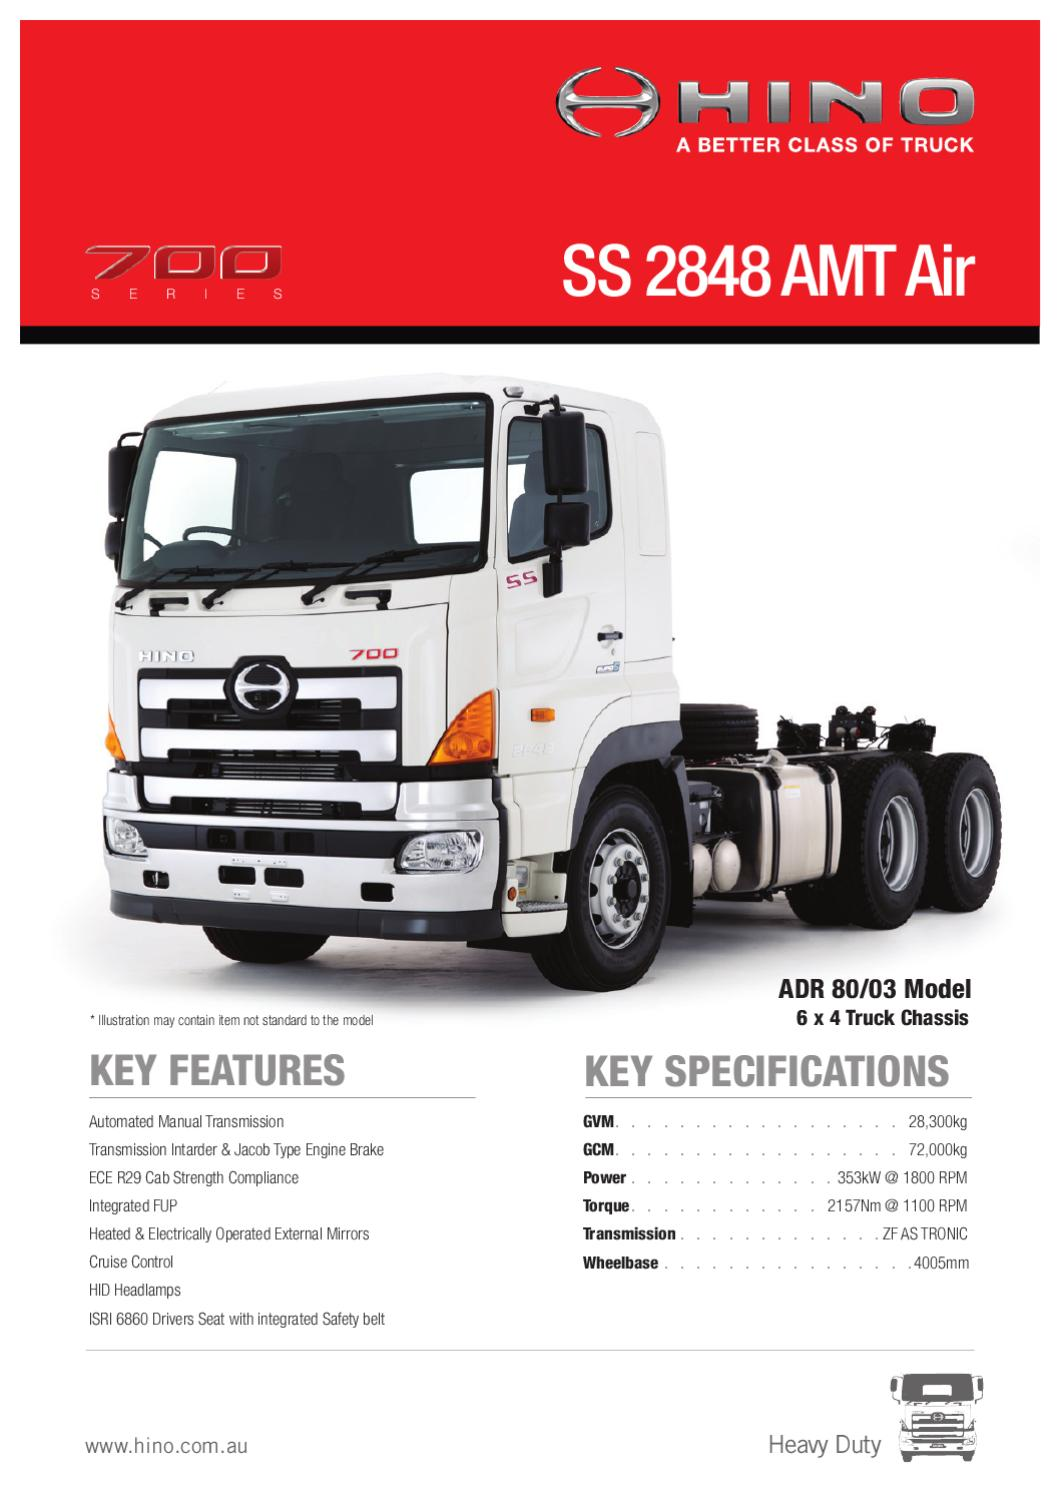 Hino 700 Series SS 2848 AMT Air Spec Sheet by Justin Edwards - Issuu